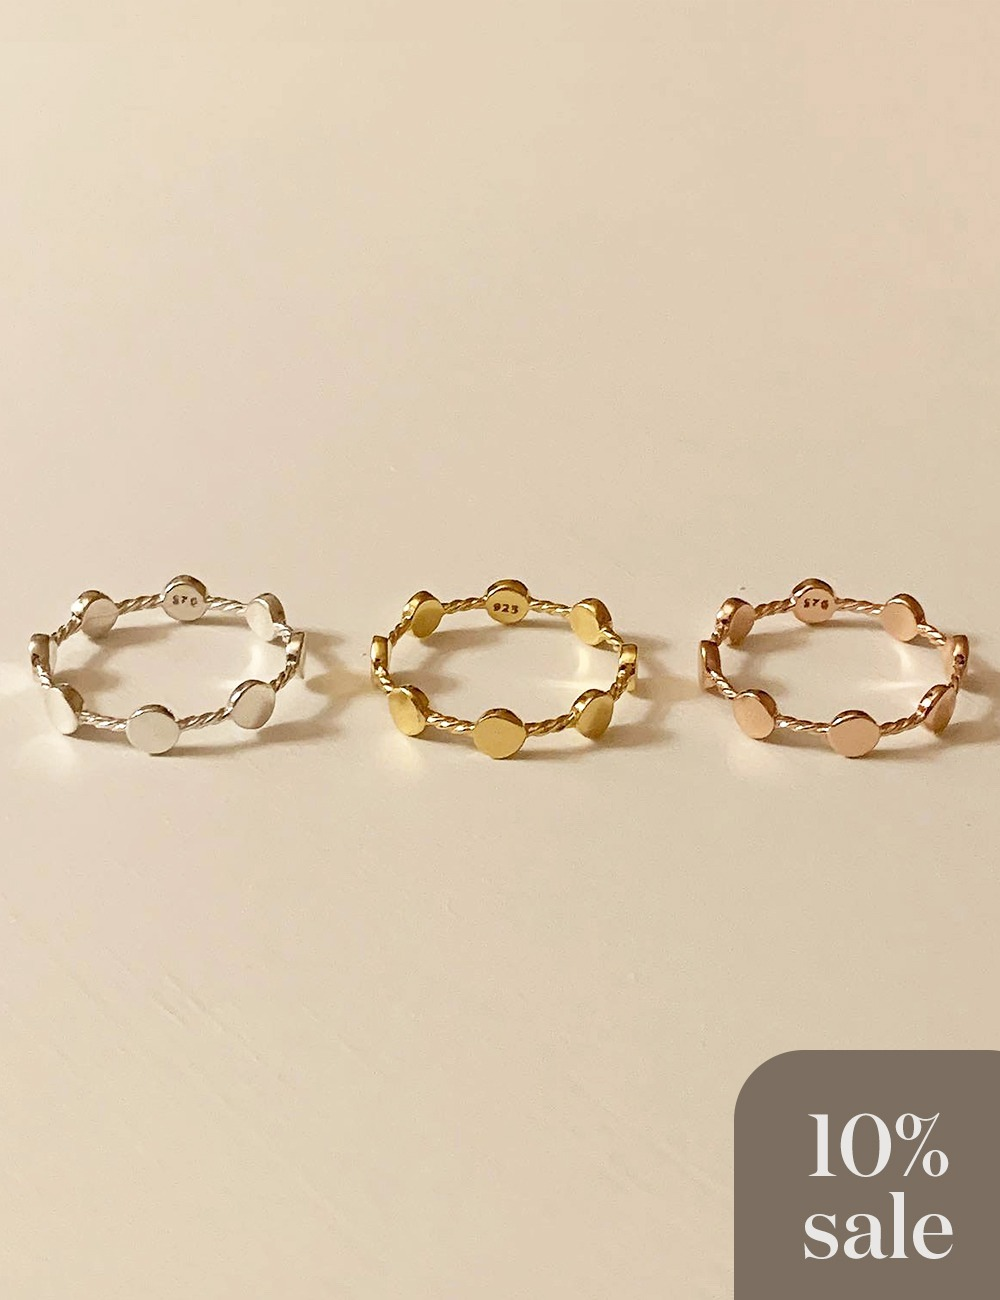 (silver 92.5) Dote chain ring